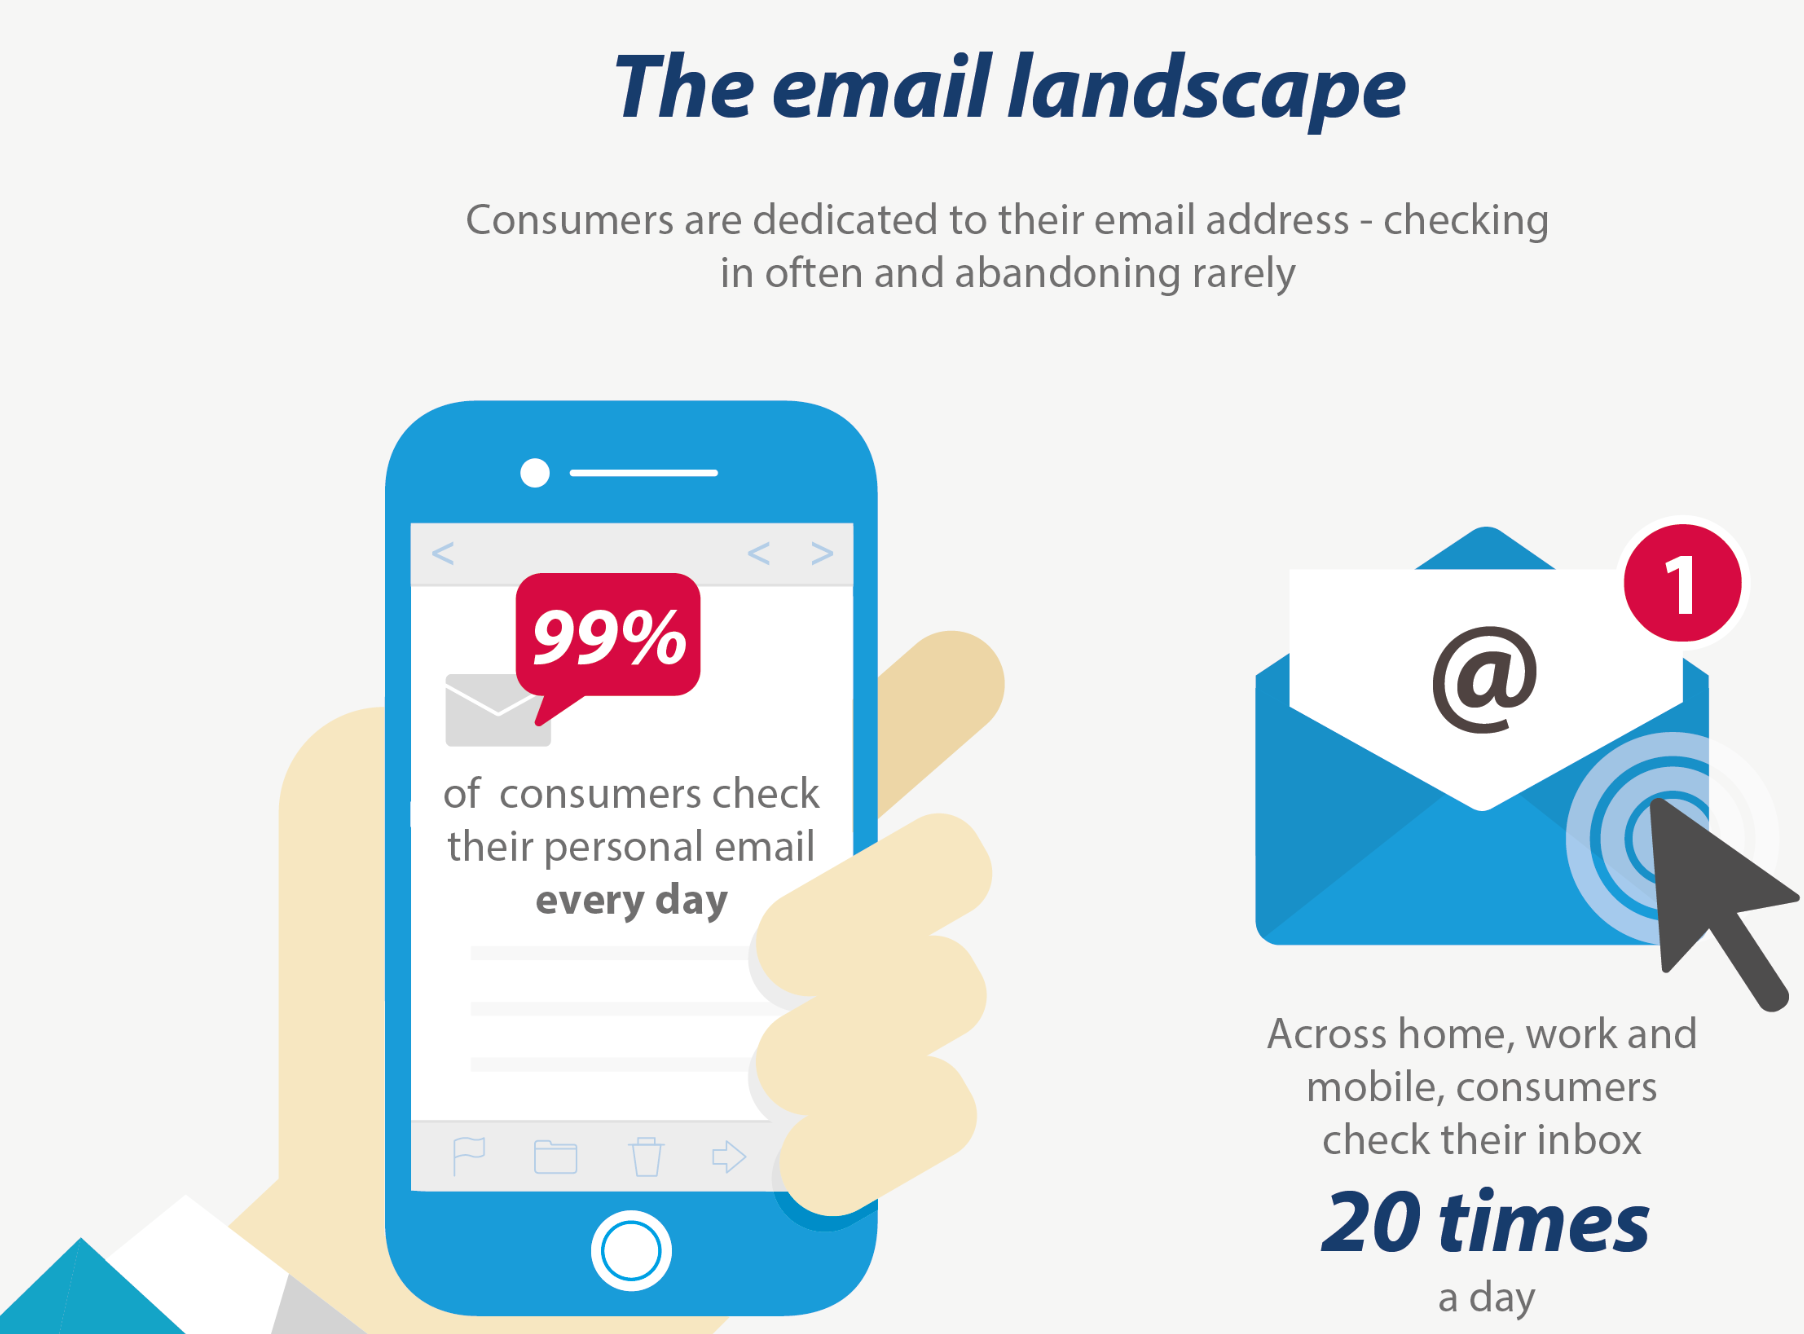 The Email Landscape